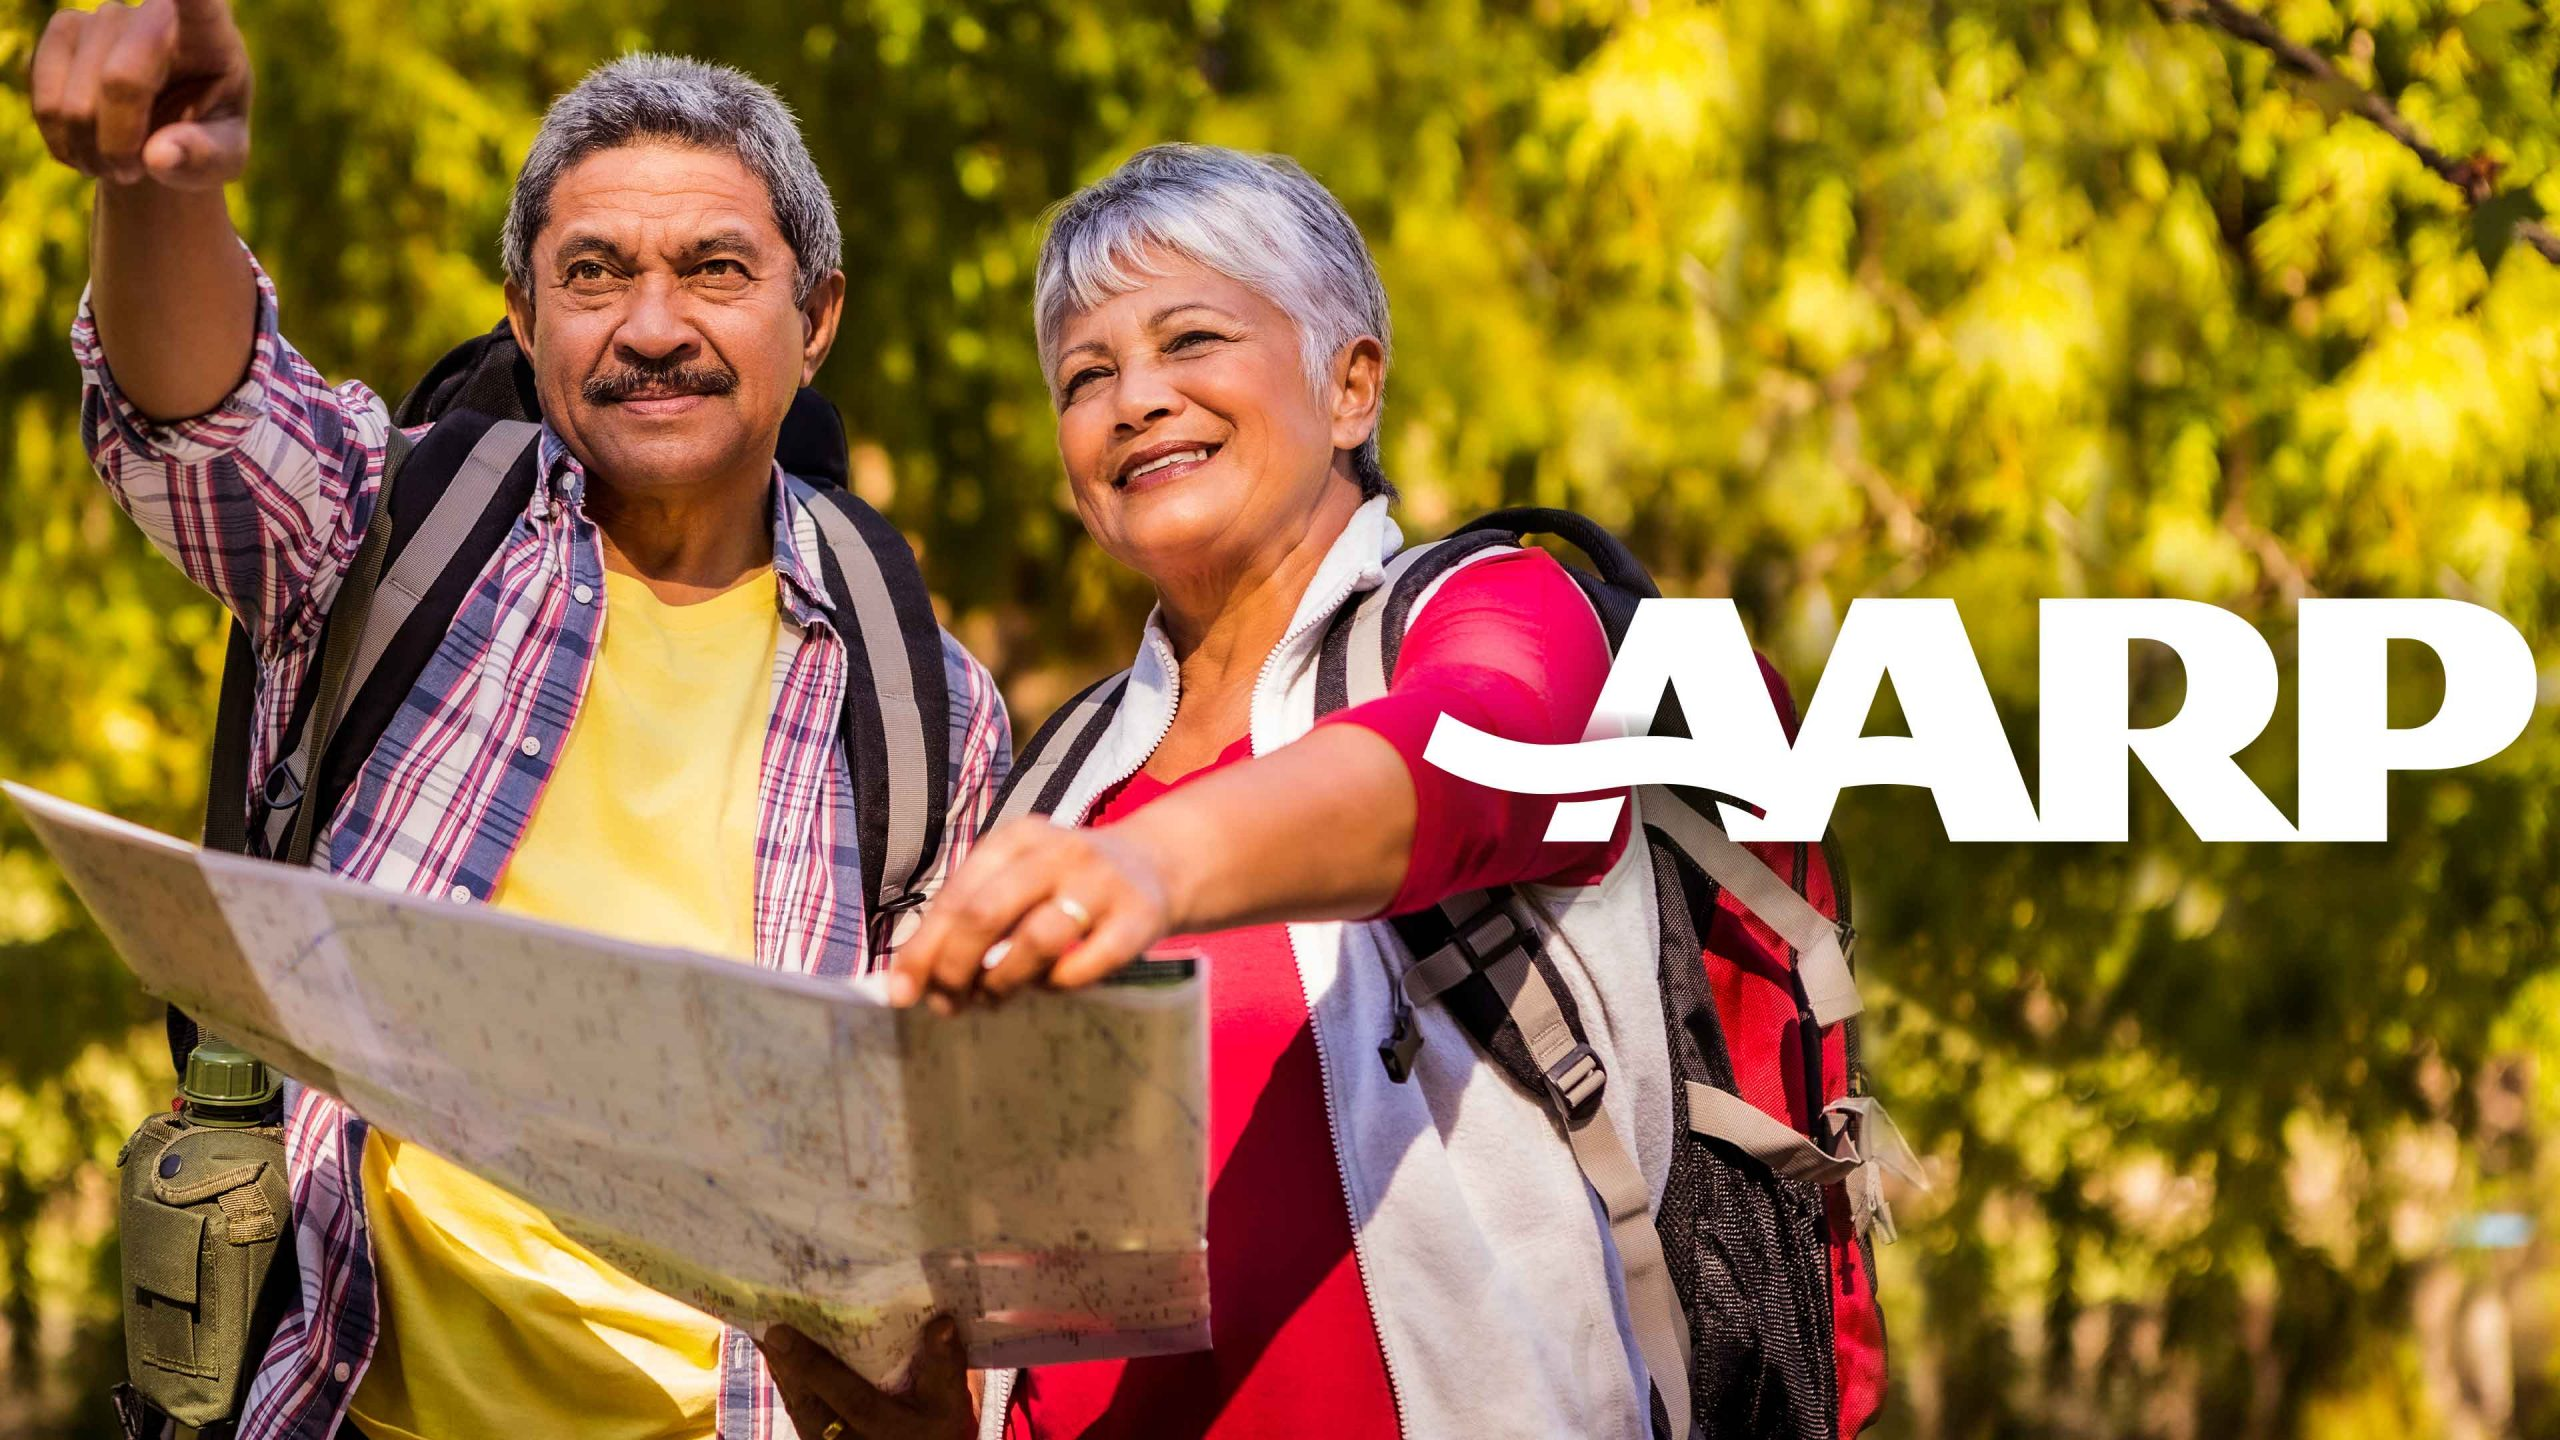 Mature couple on an adventure outdoors with AARP logo